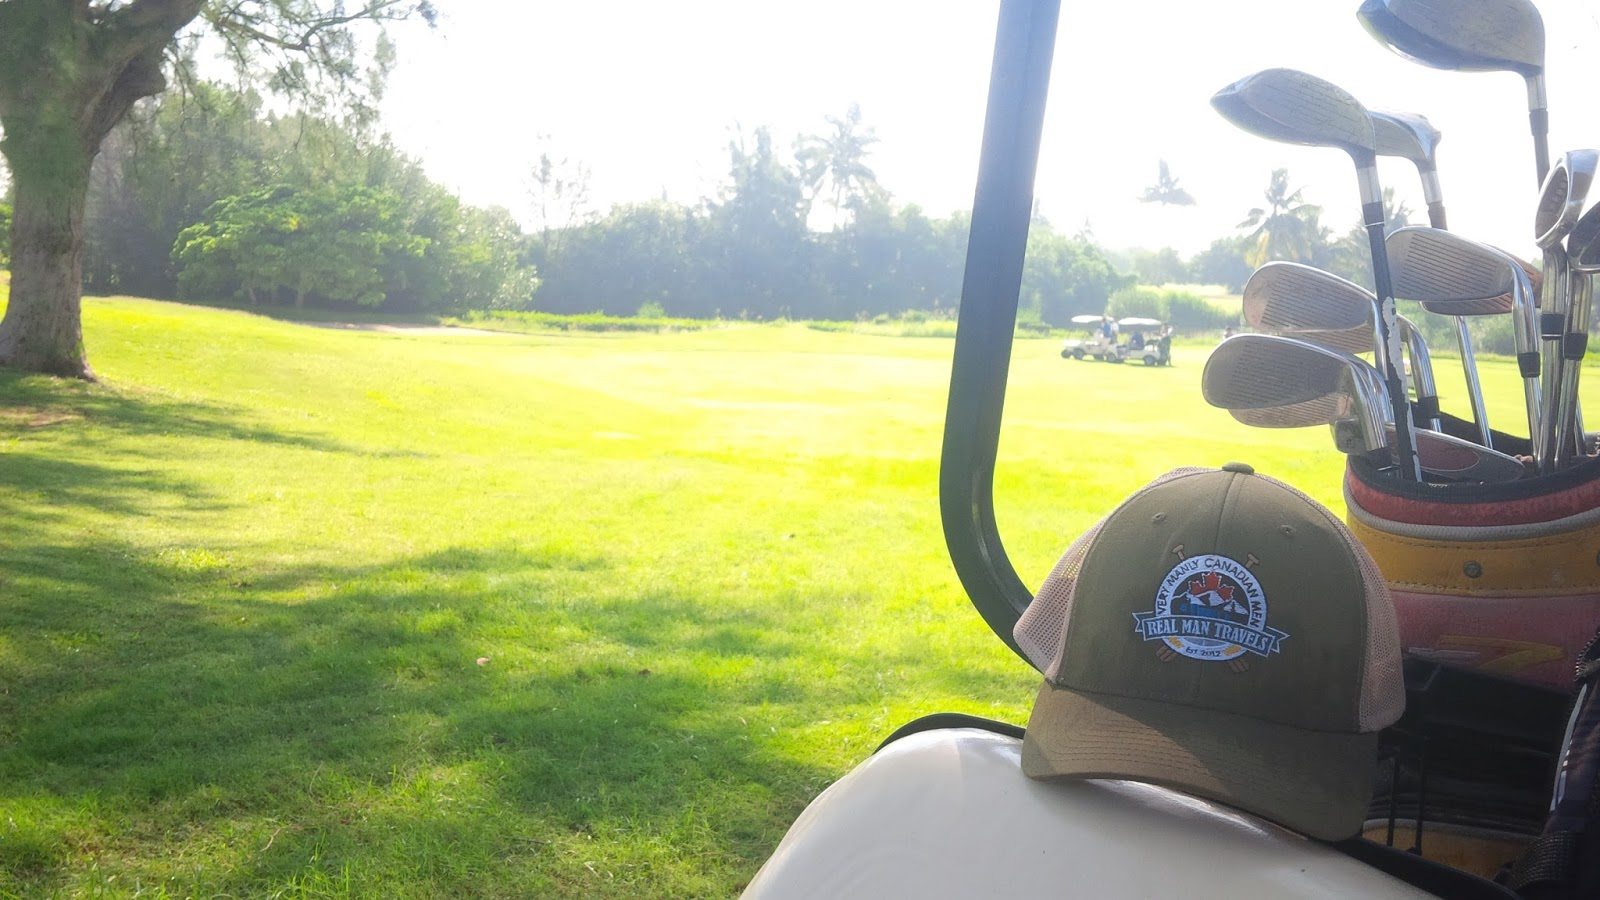 Real Man Travels hat on golf cart